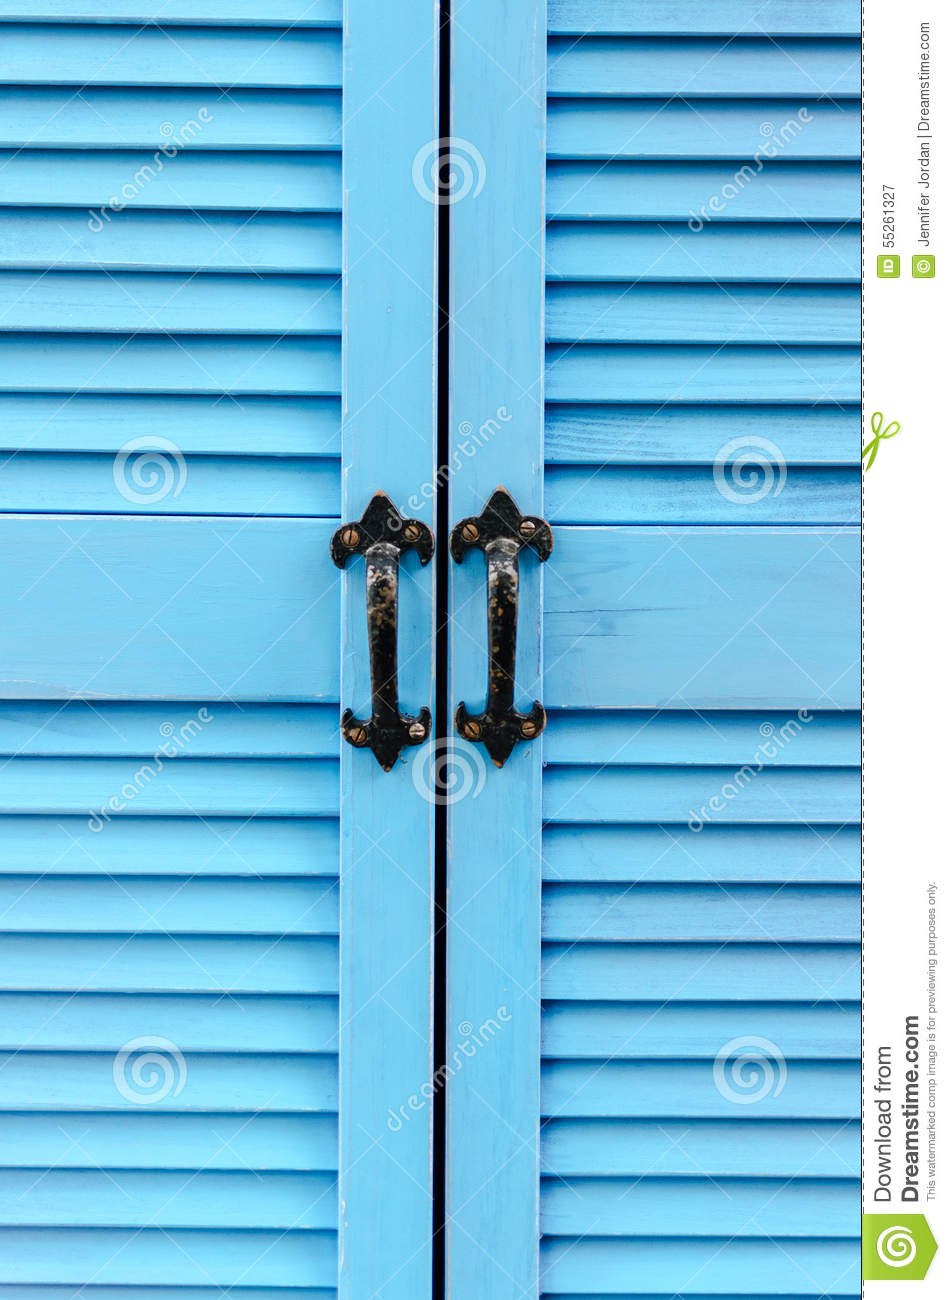 Slatted Doors close up blue slatted doors with black iron handles - vertical